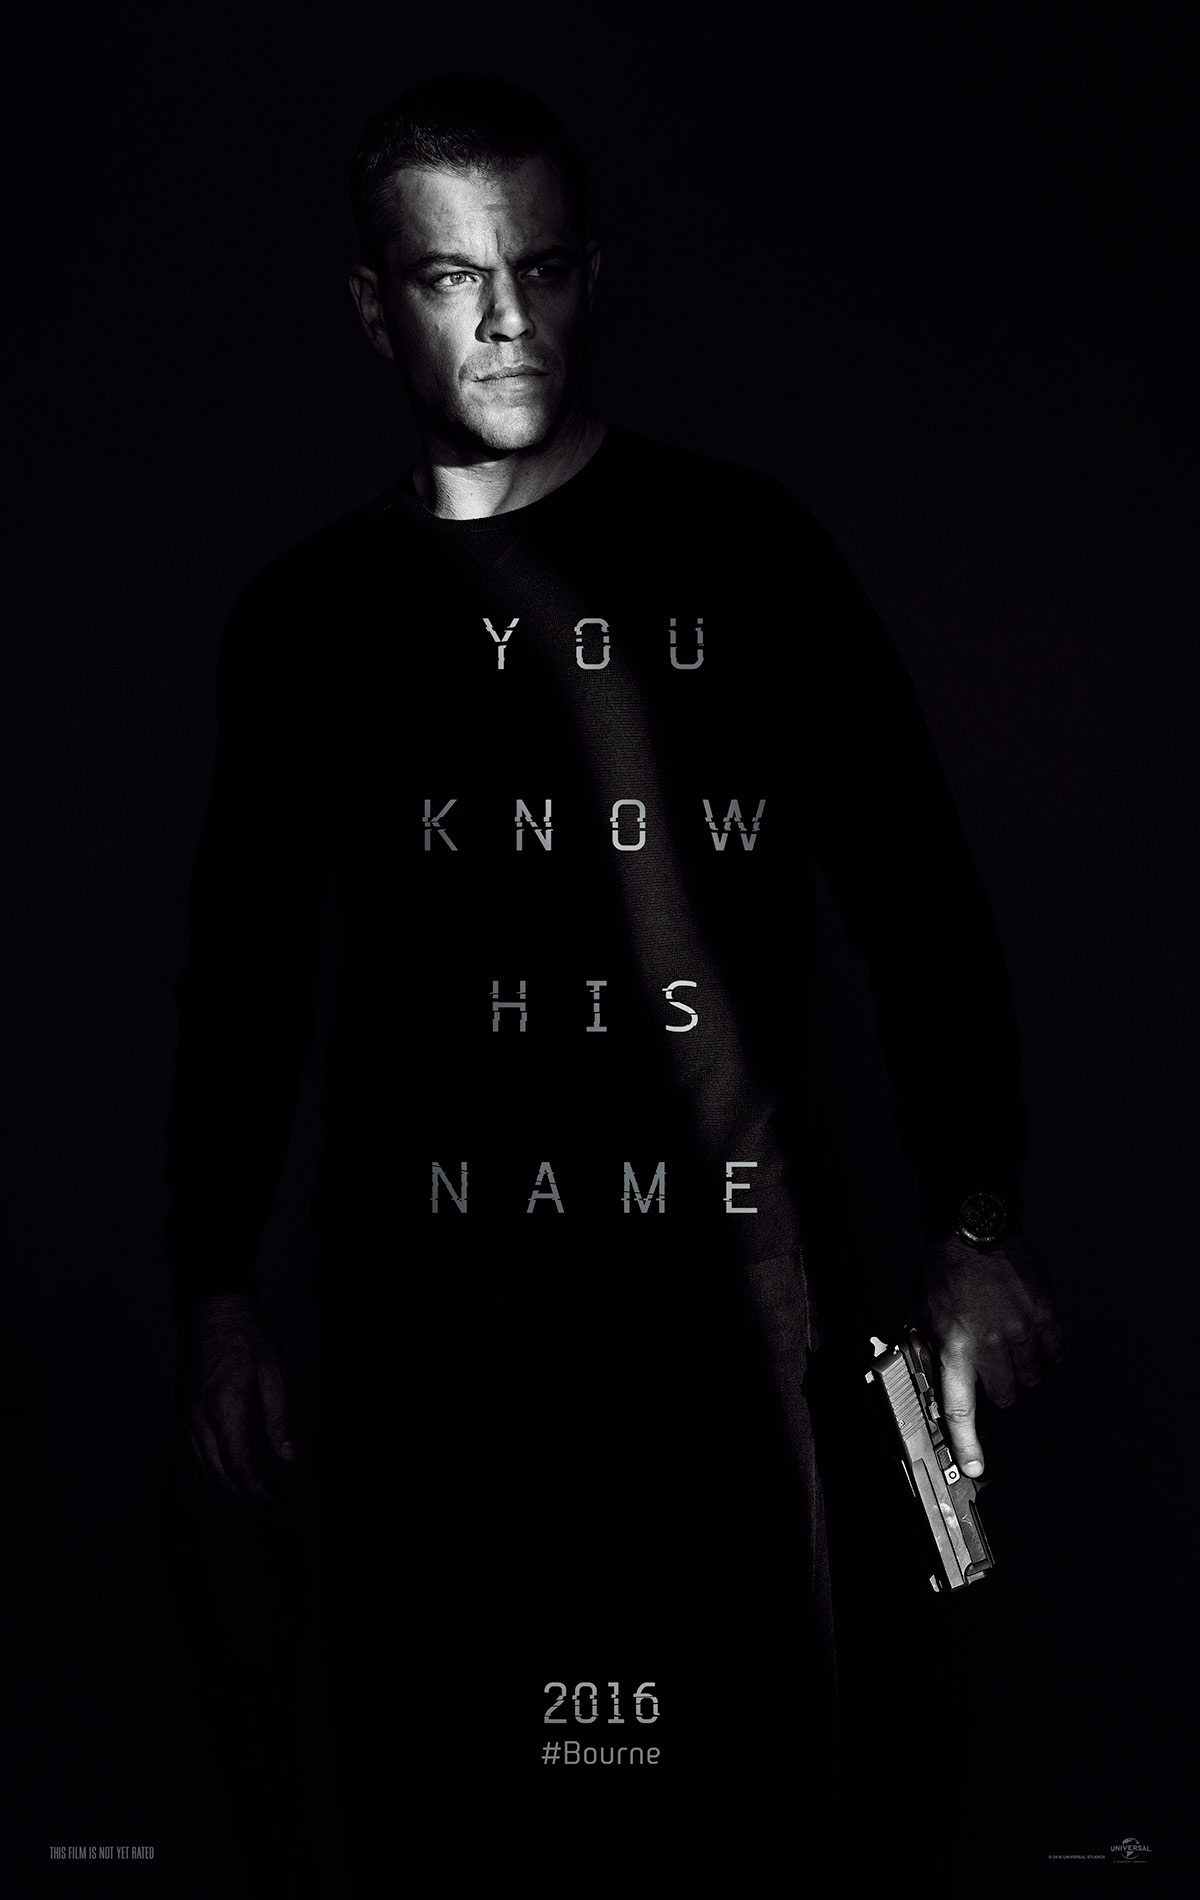 jason-bourne-movie-film-poster-images